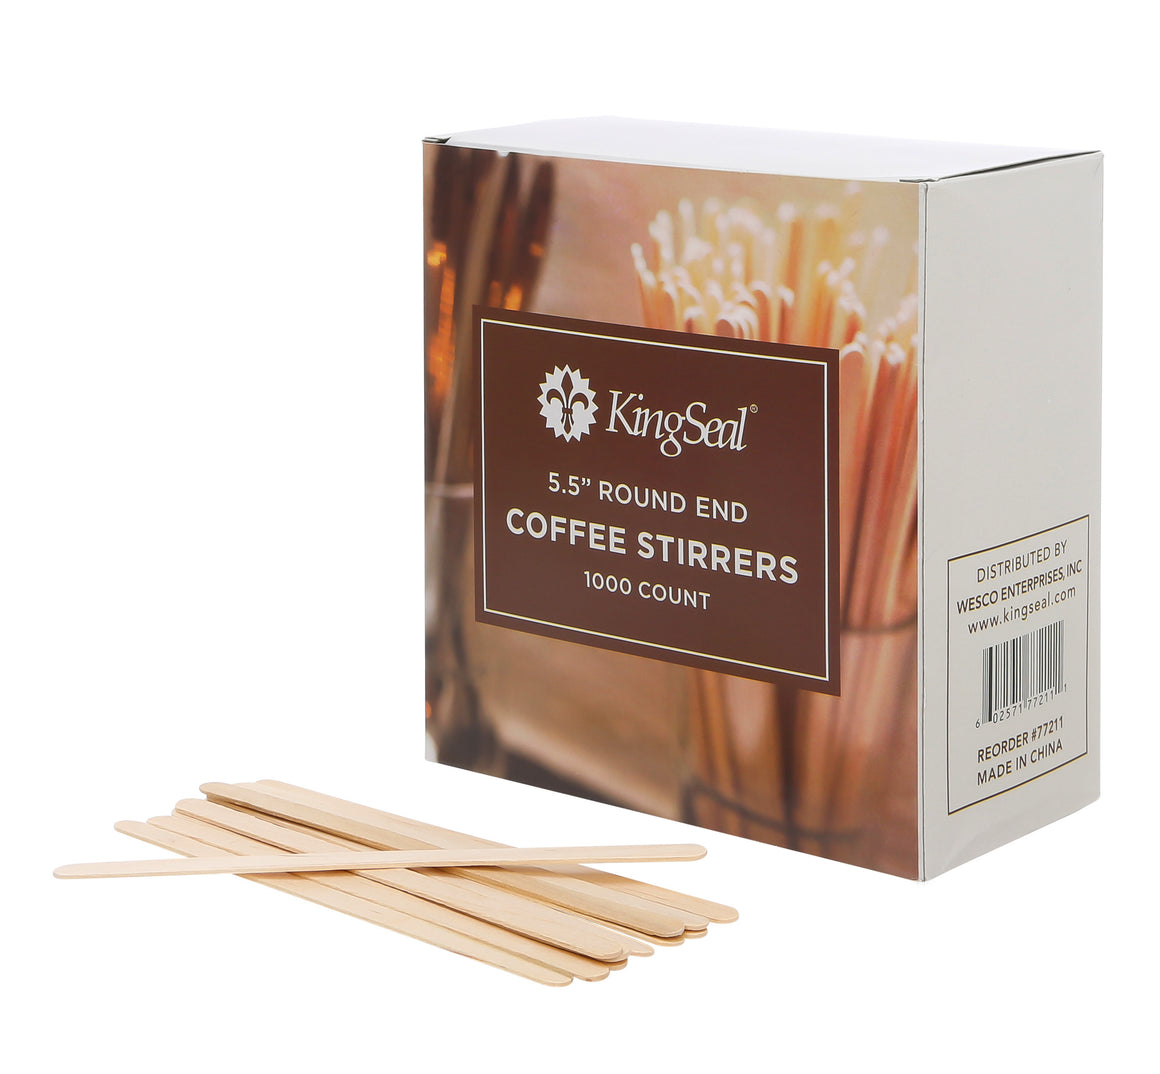 KingSeal Natural Birch Wood Coffee Beverage Stirrers, Round End - 5.5 Inches